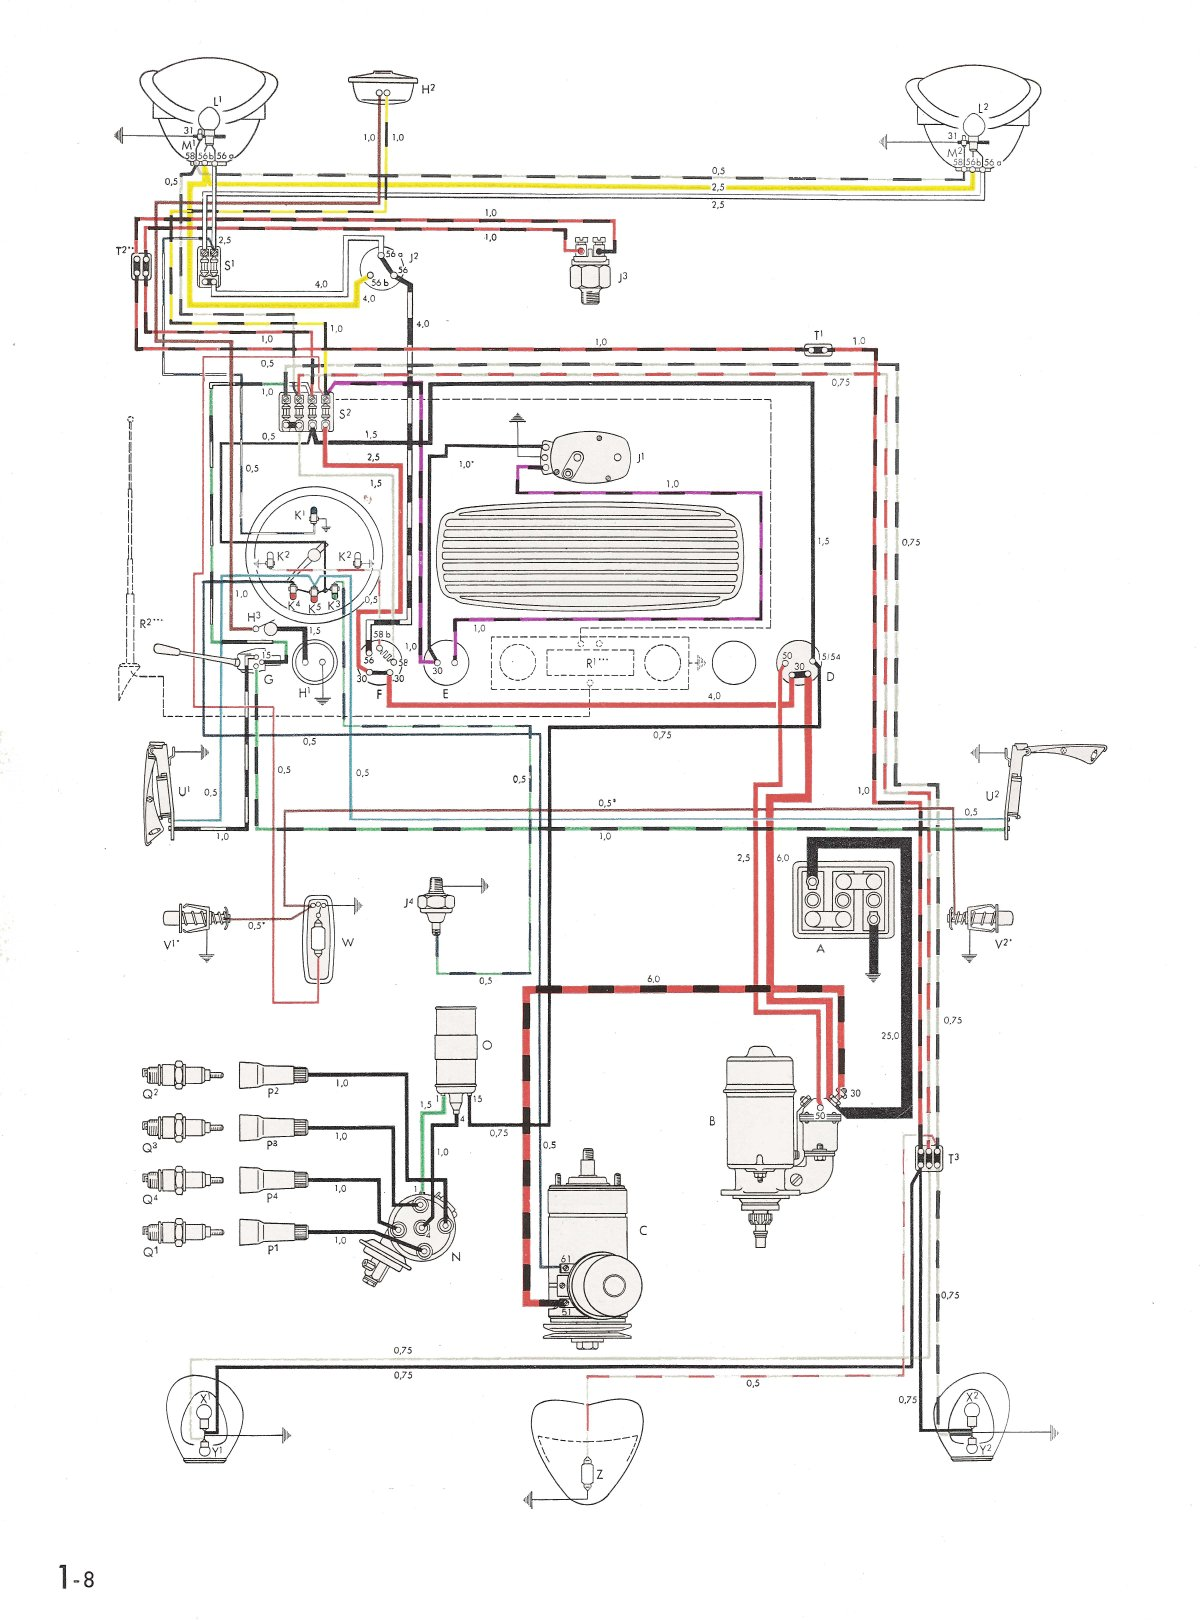 Type 1 Wiring Diagrams 79 Chevy Starter Diagram Get Free Image About 1954